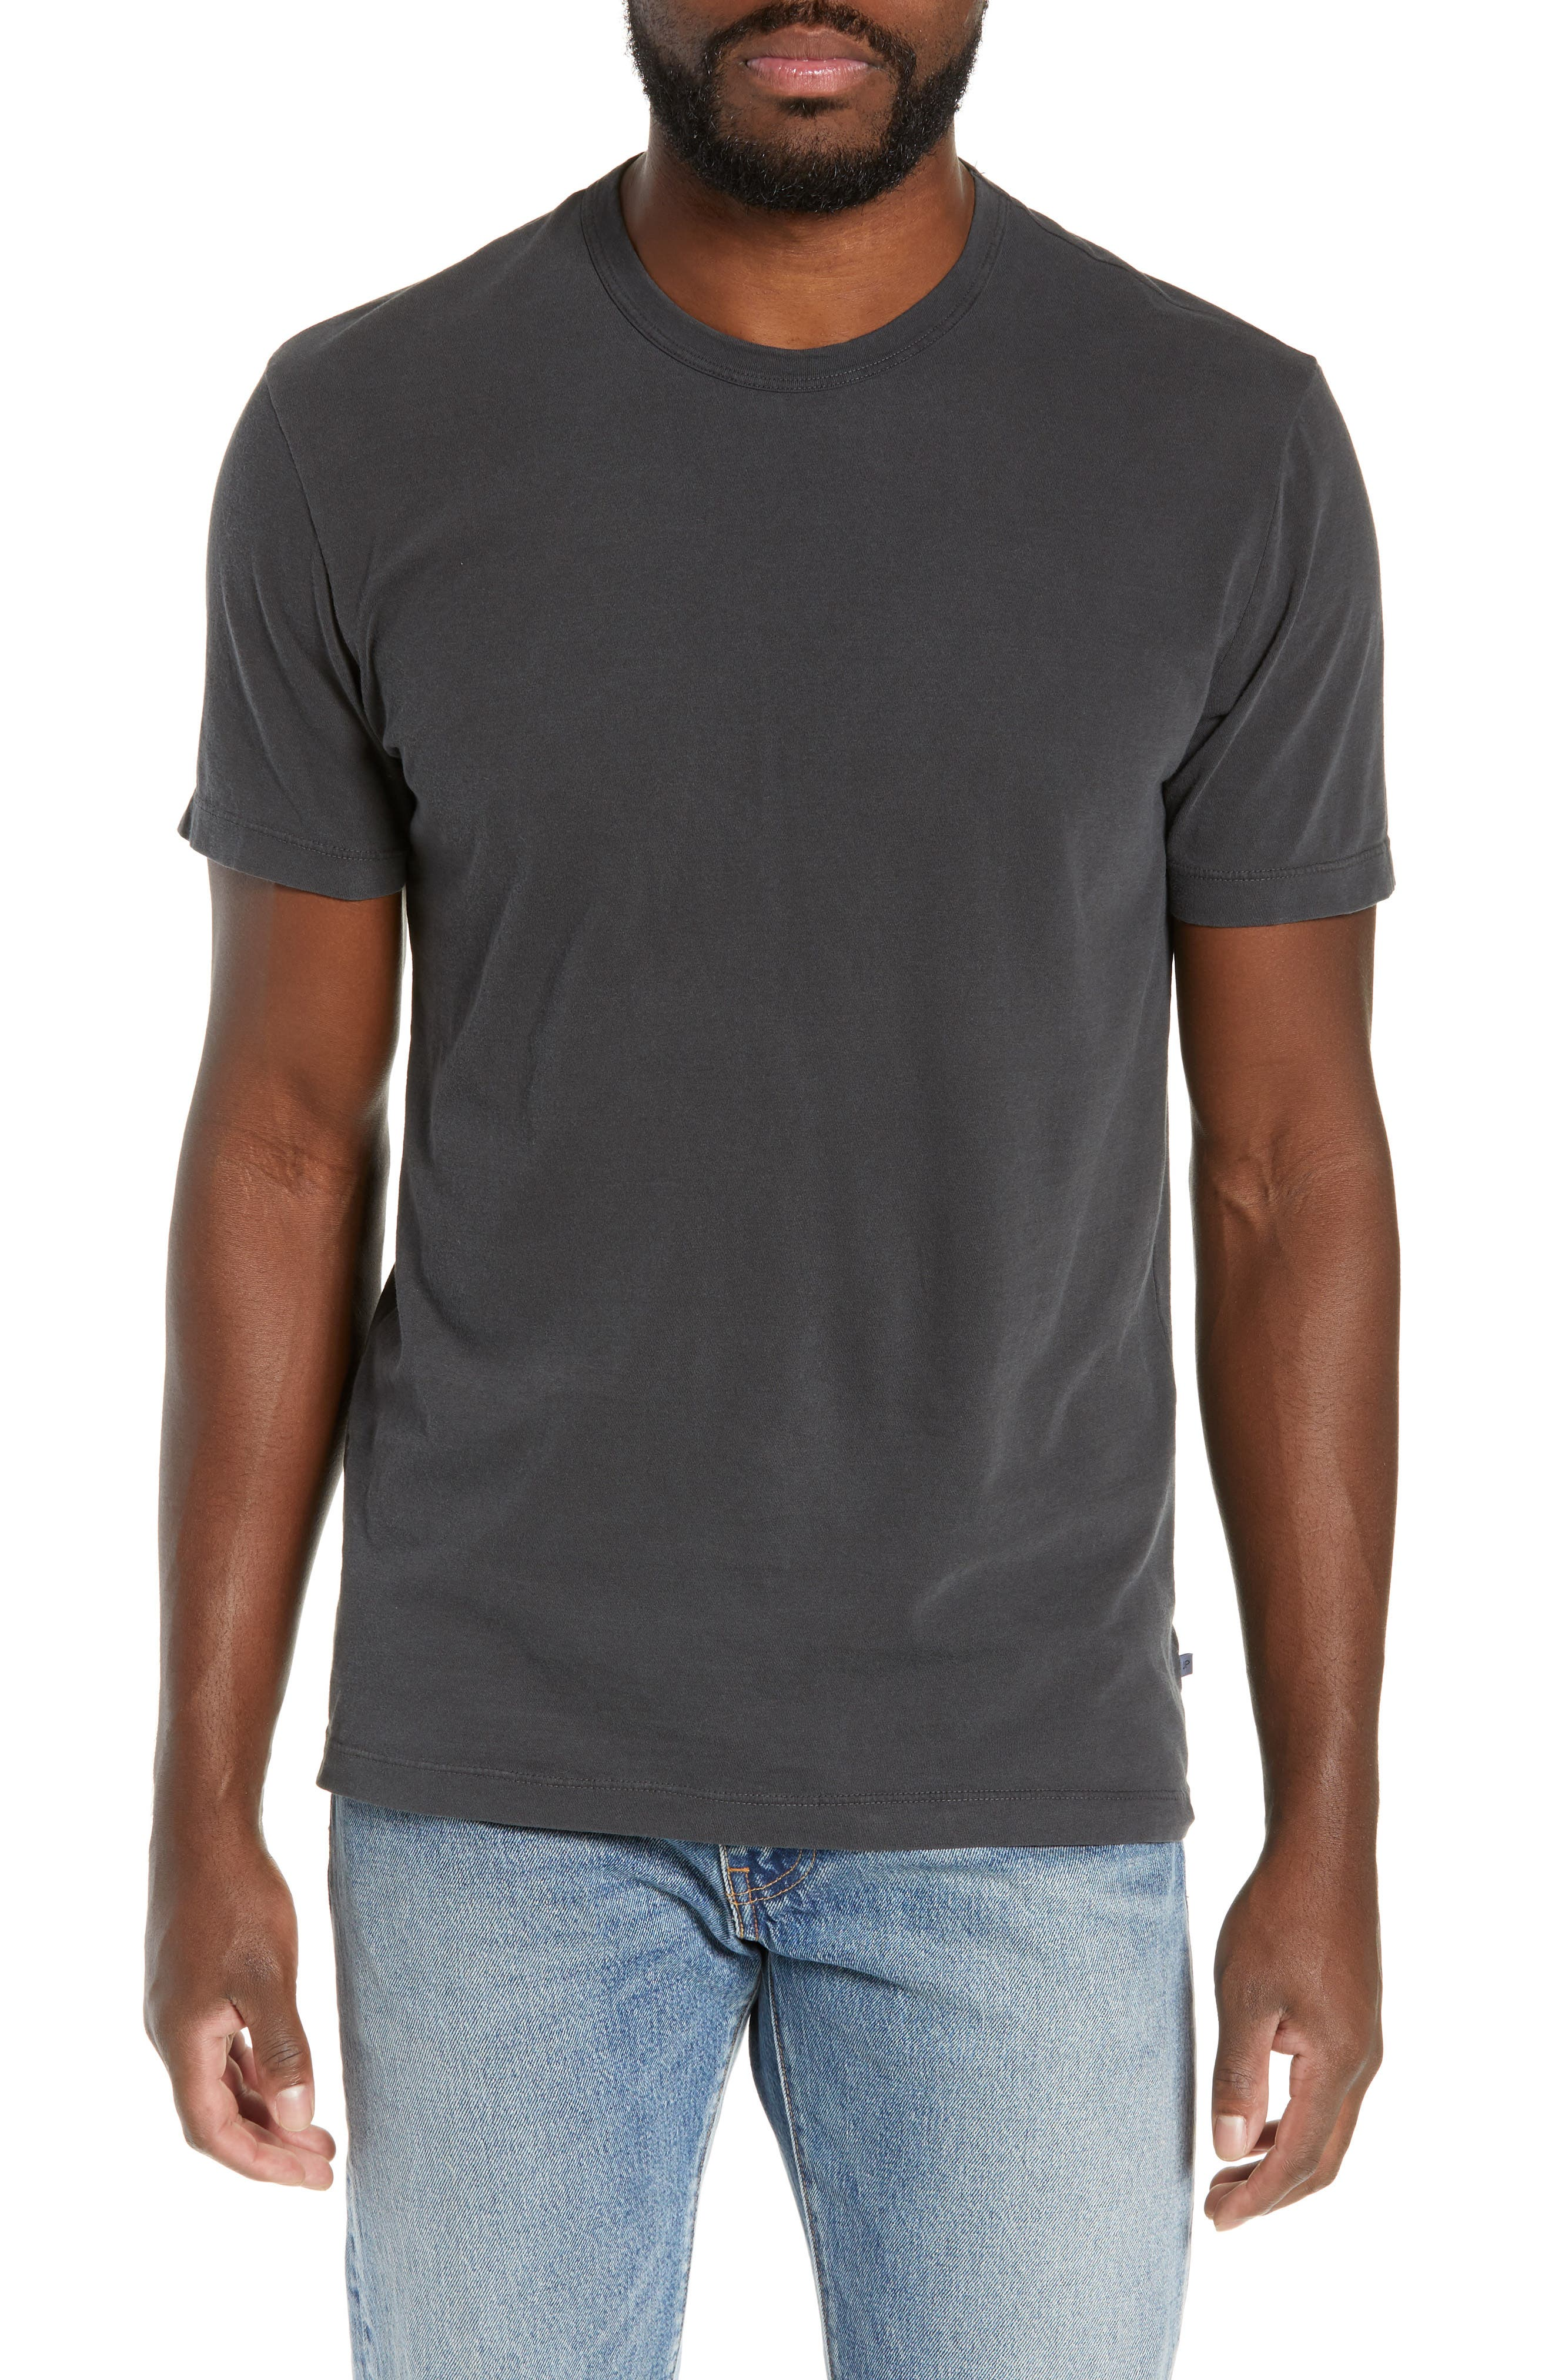 JAMES PERSE, Regular Fit Tonal Palms Crewneck Shirt, Main thumbnail 1, color, 020